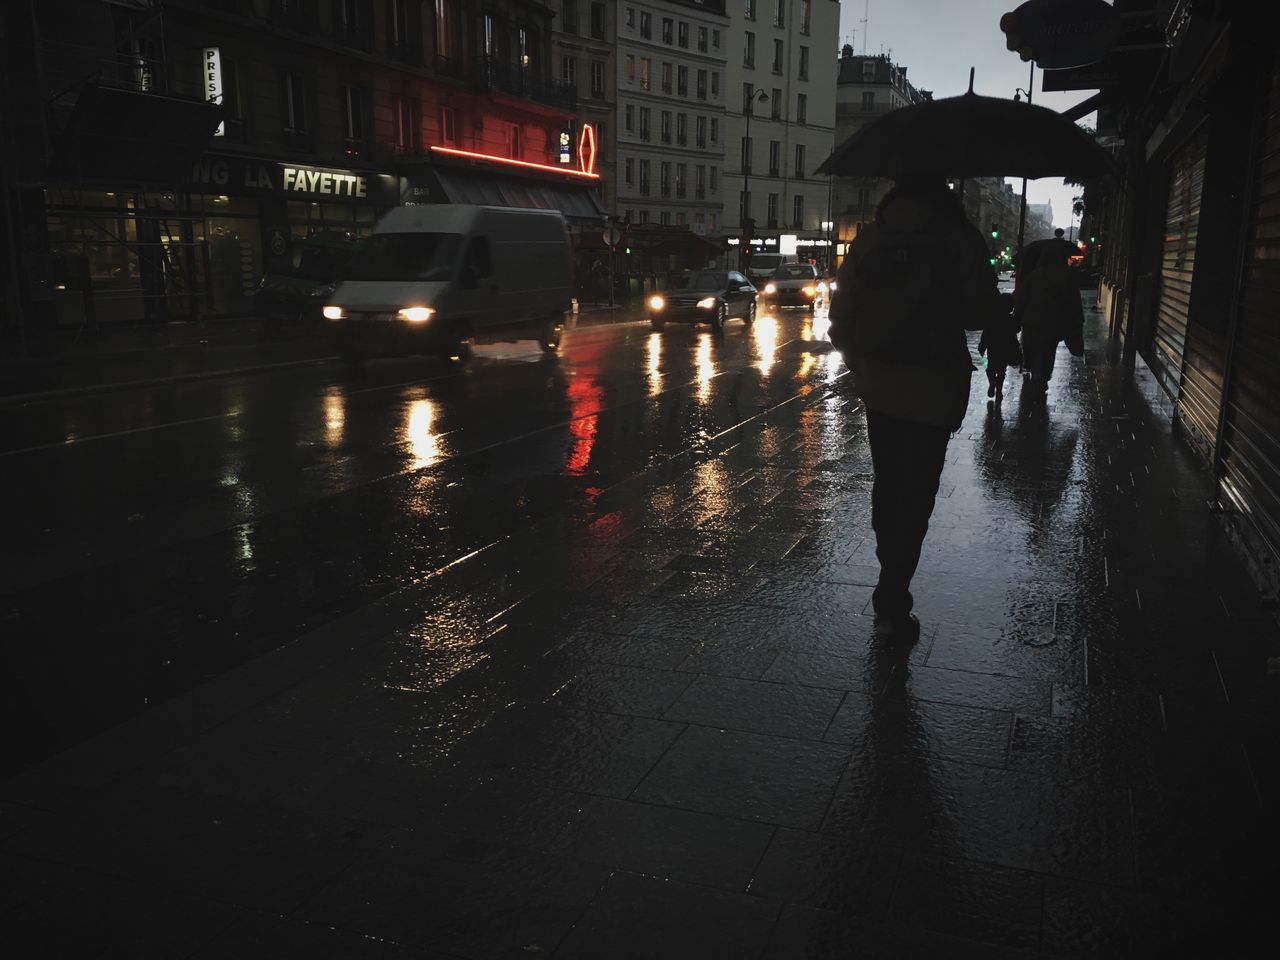 rain, wet, rainy season, weather, street, architecture, walking, built structure, city, land vehicle, real people, city life, building exterior, road, protection, outdoors, men, raindrop, water, lifestyles, night, two people, women, under, full length, people